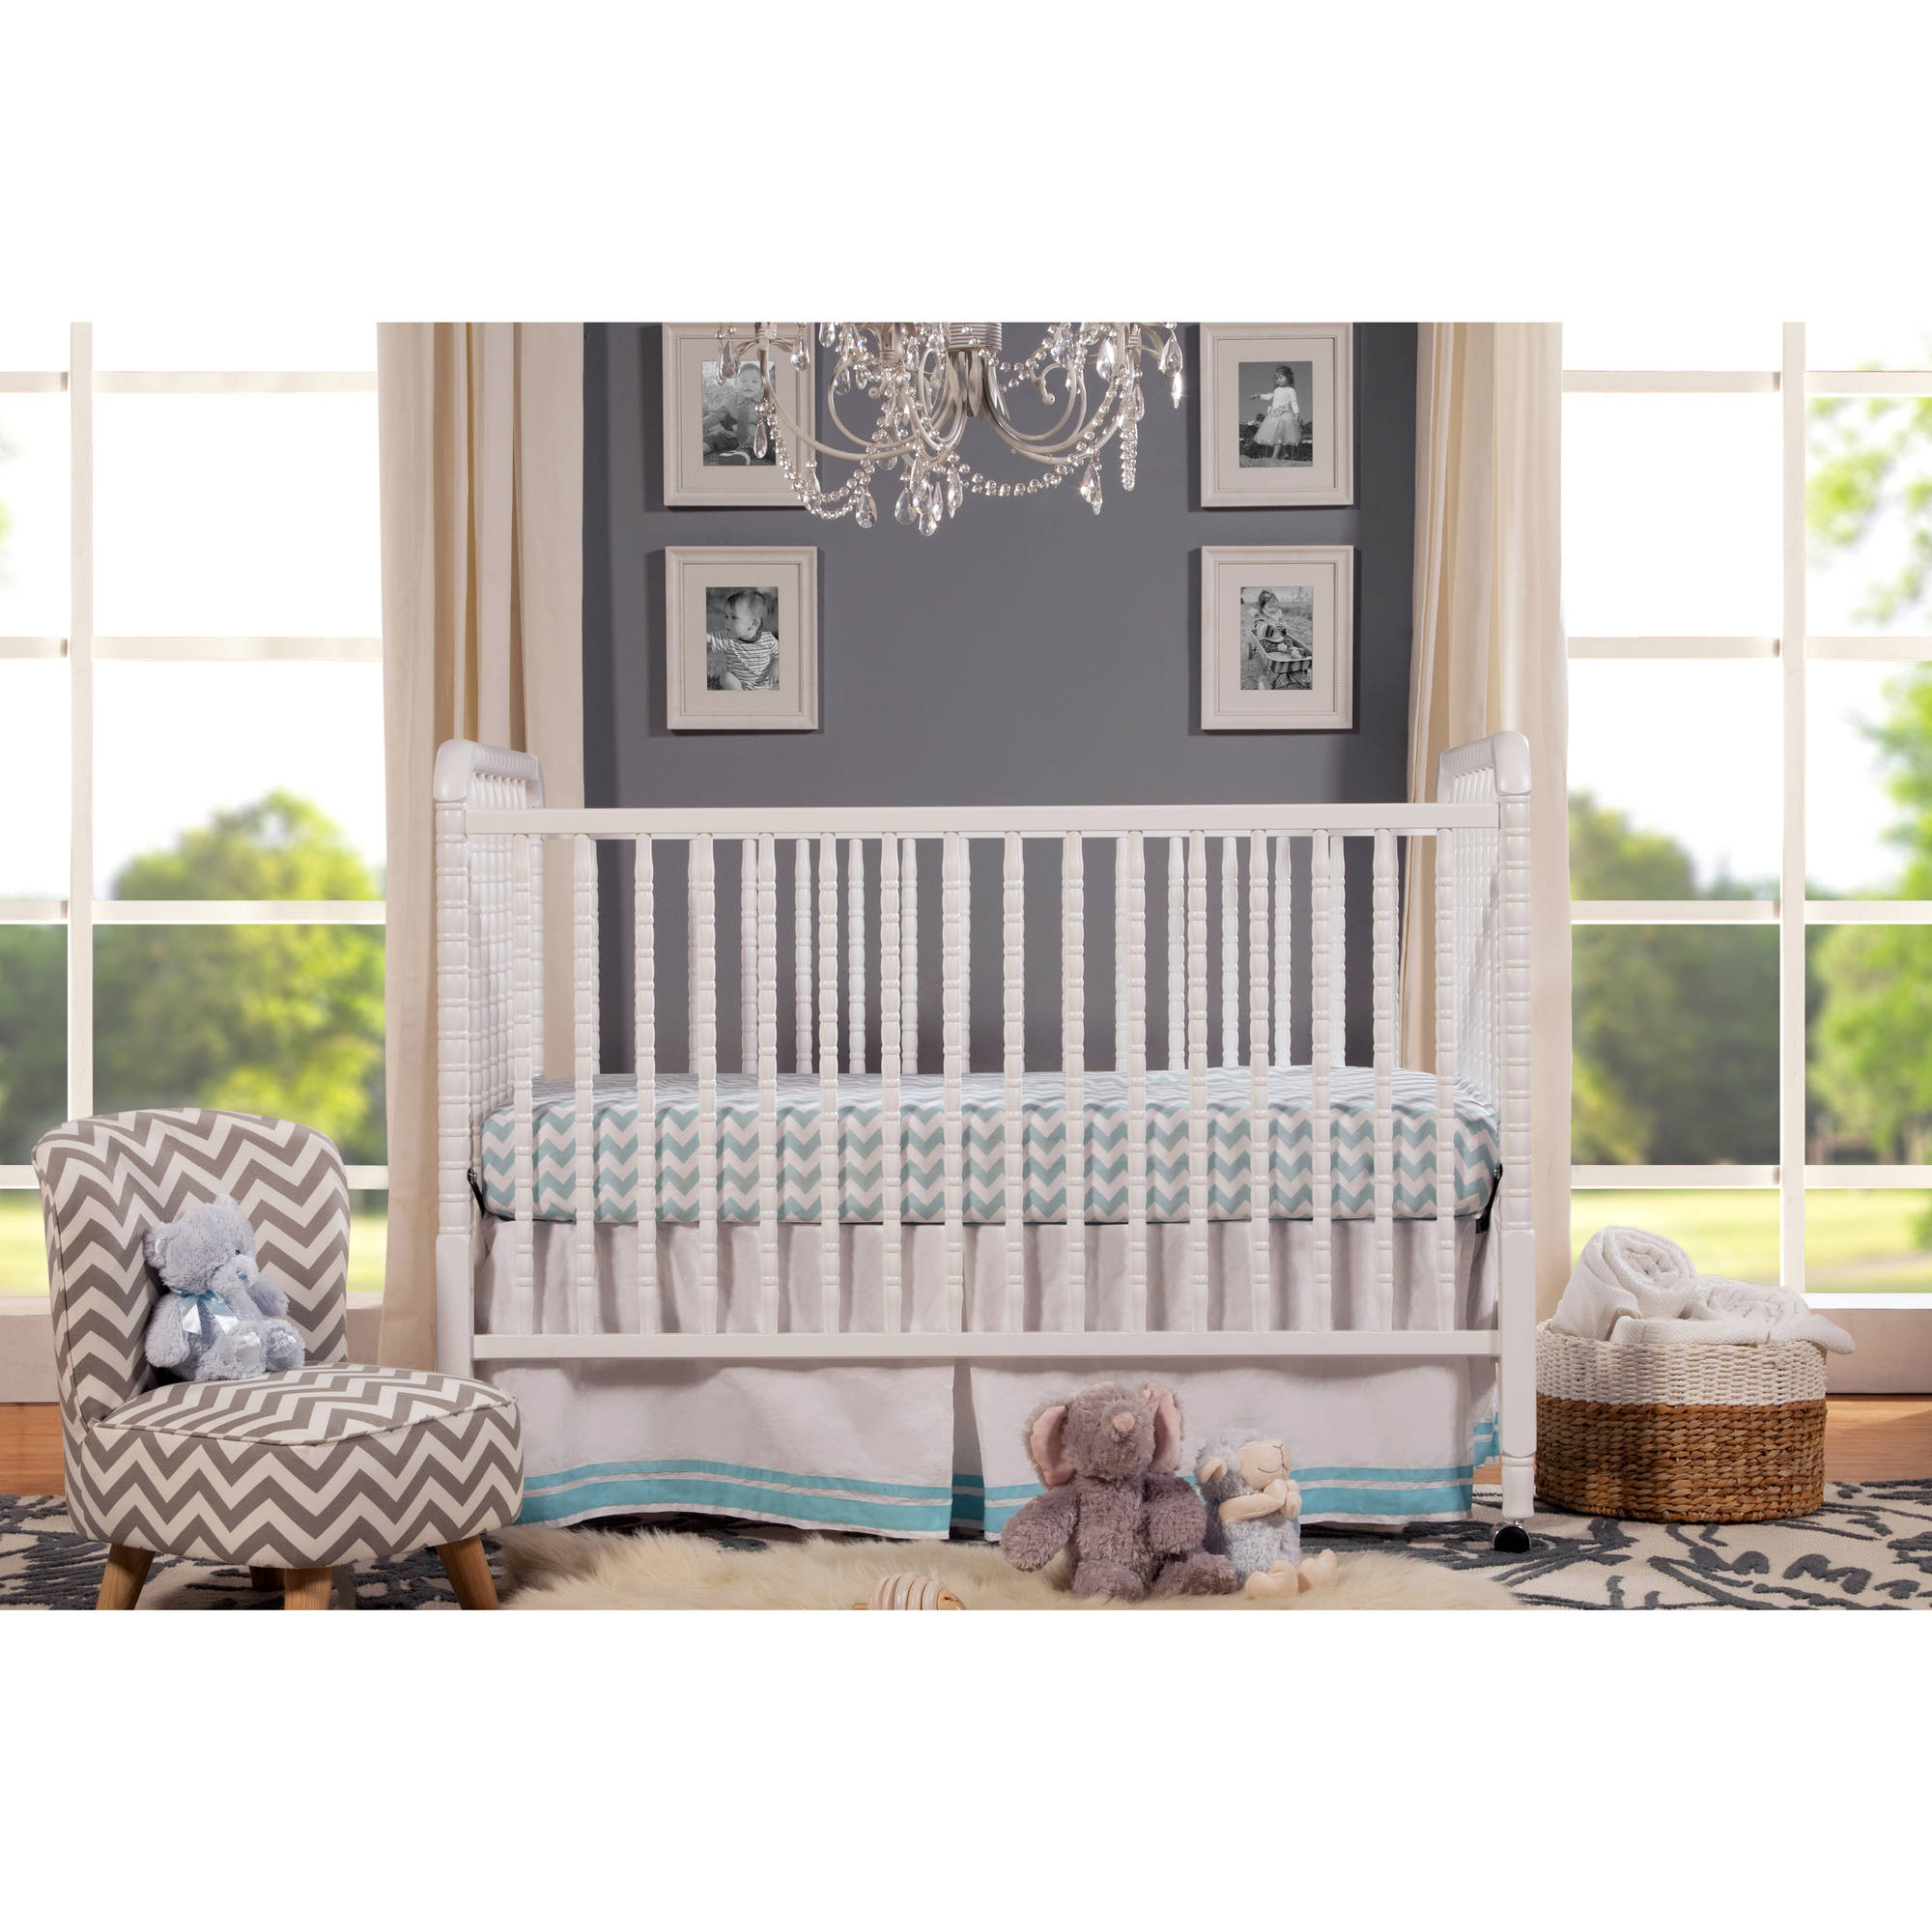 Davinci Jenny Lind Stationary Crib, Choose Your Finish  Walmart